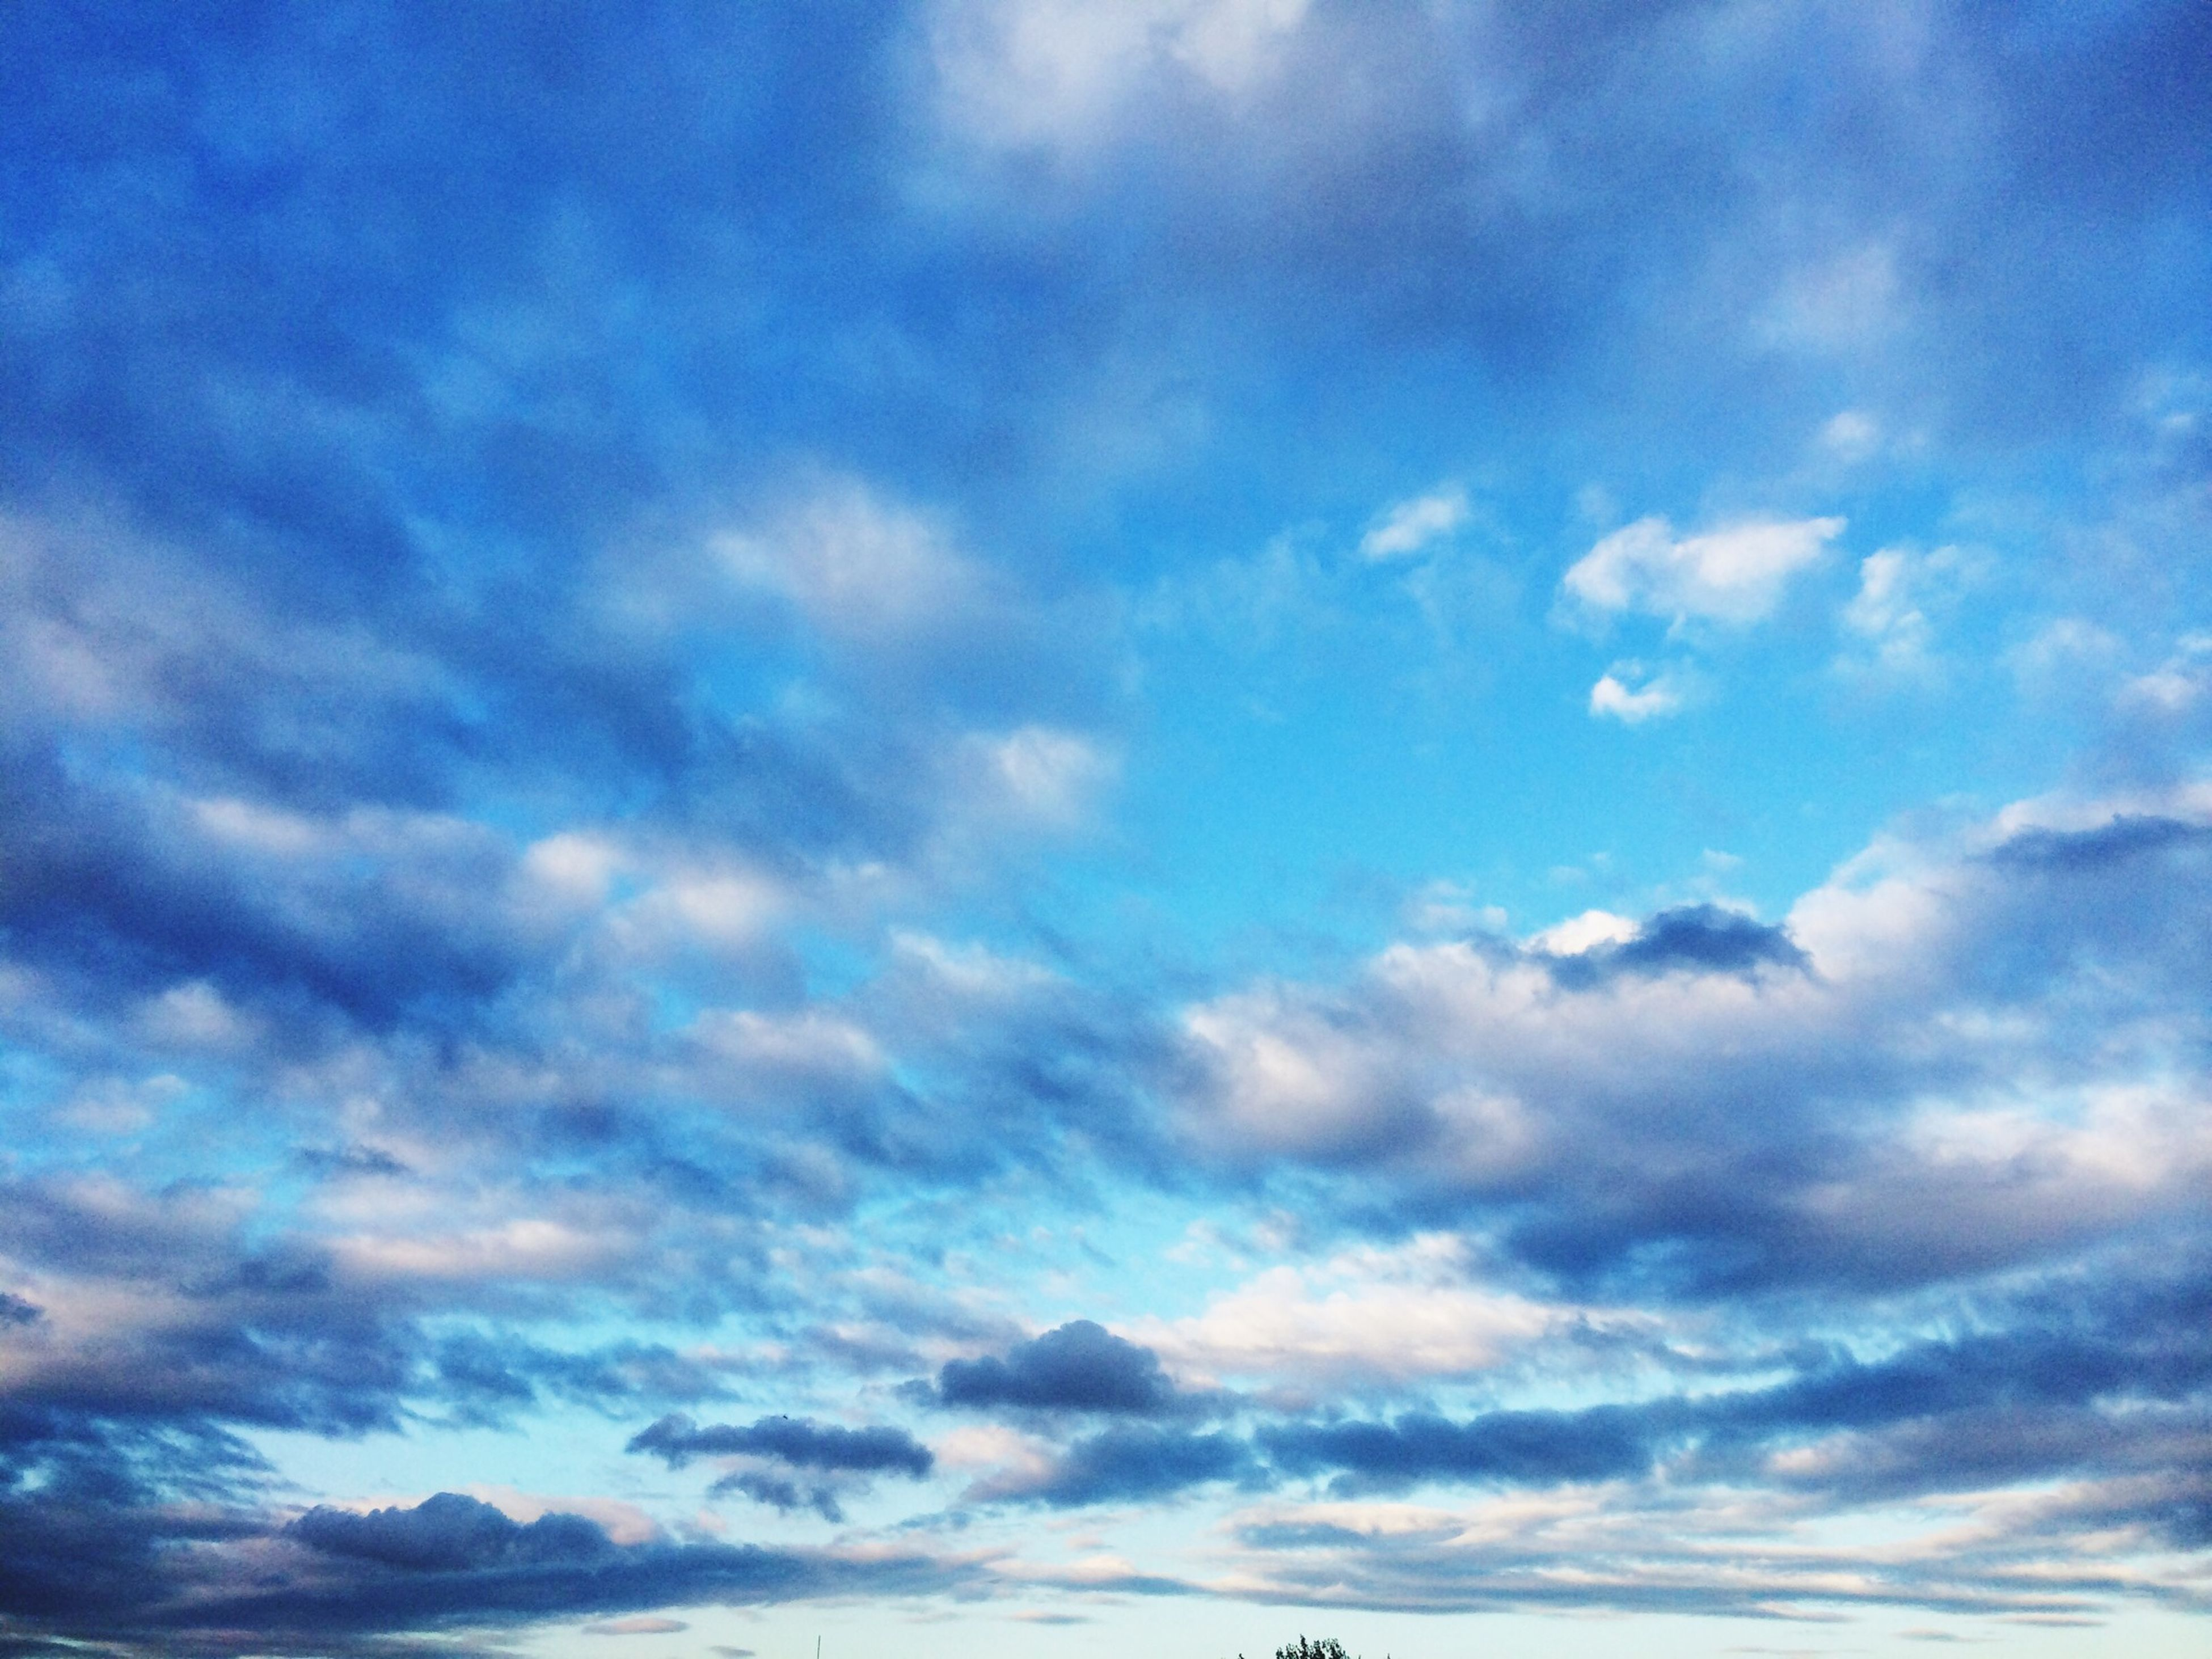 sky, low angle view, cloud - sky, sky only, blue, beauty in nature, tranquility, scenics, cloudy, tranquil scene, nature, cloudscape, cloud, backgrounds, idyllic, outdoors, majestic, no people, full frame, white color